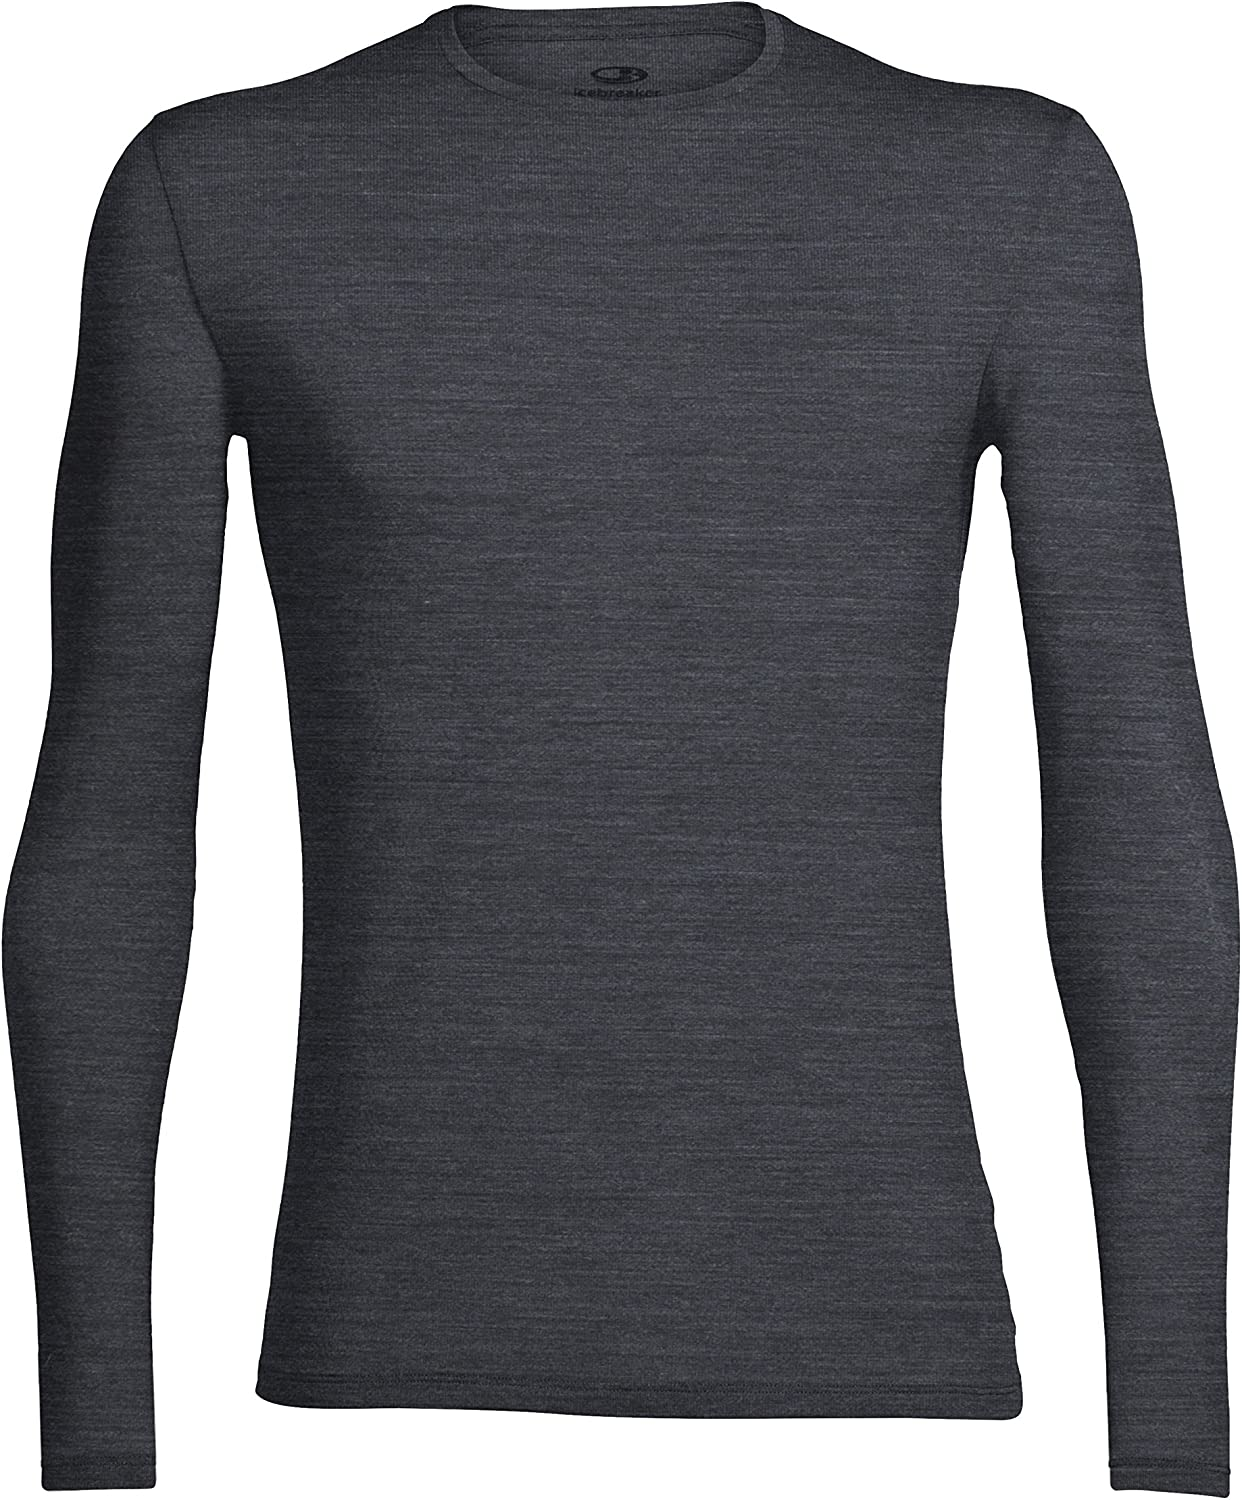 Icebreaker Merino Men's Anatomica Long Sleeve Crew Neck Shirt (Slim Fit Undershirt), Merino Wool